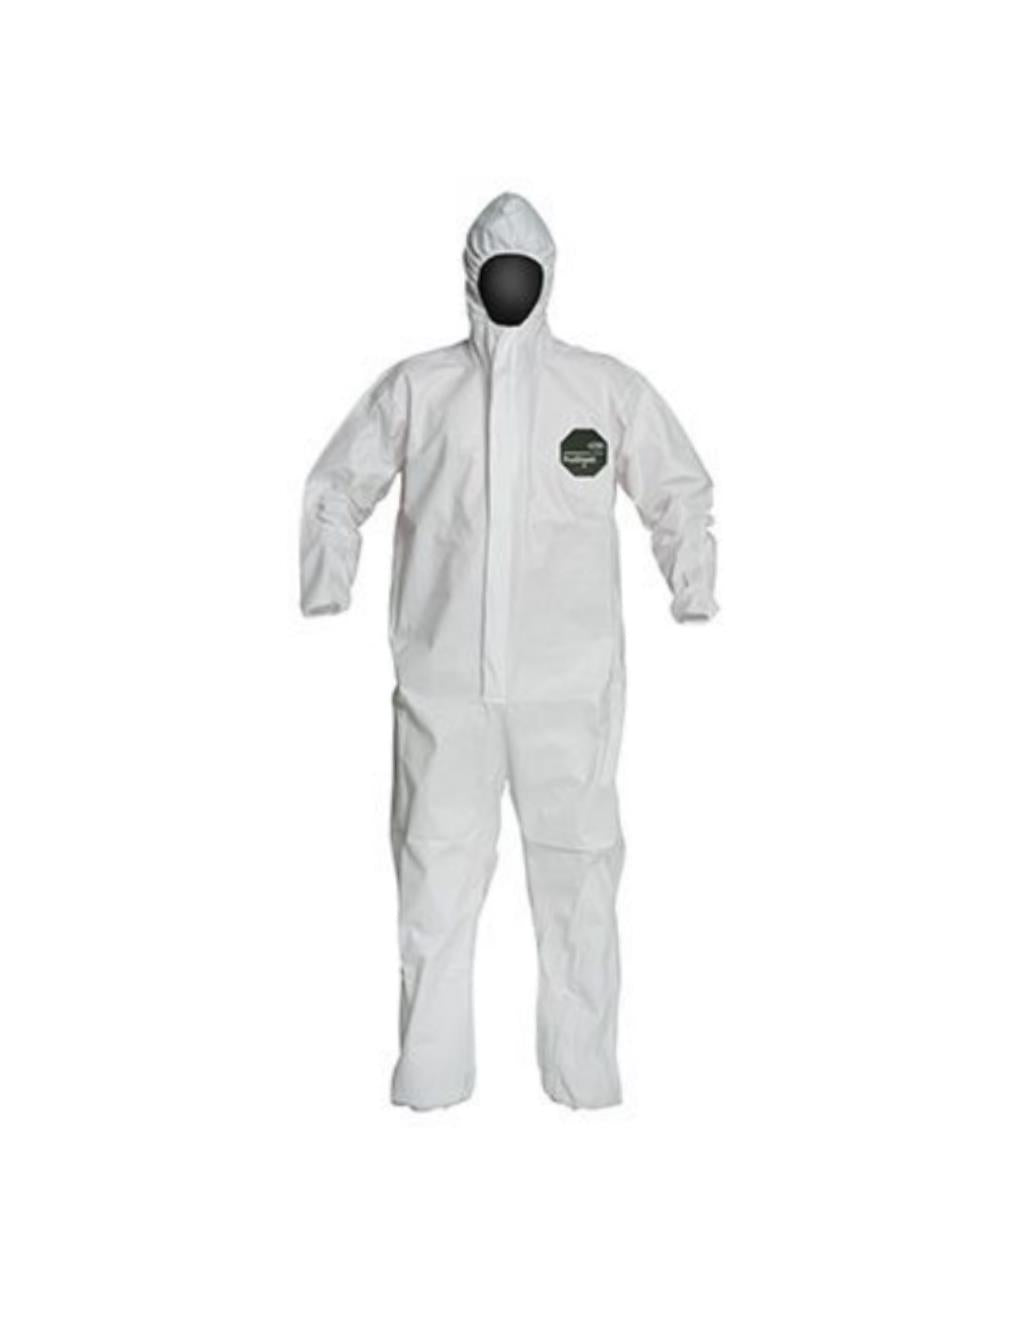 Dupont SMS General Purpose Coveralls, Size L - 25-Pack (30% OFF)